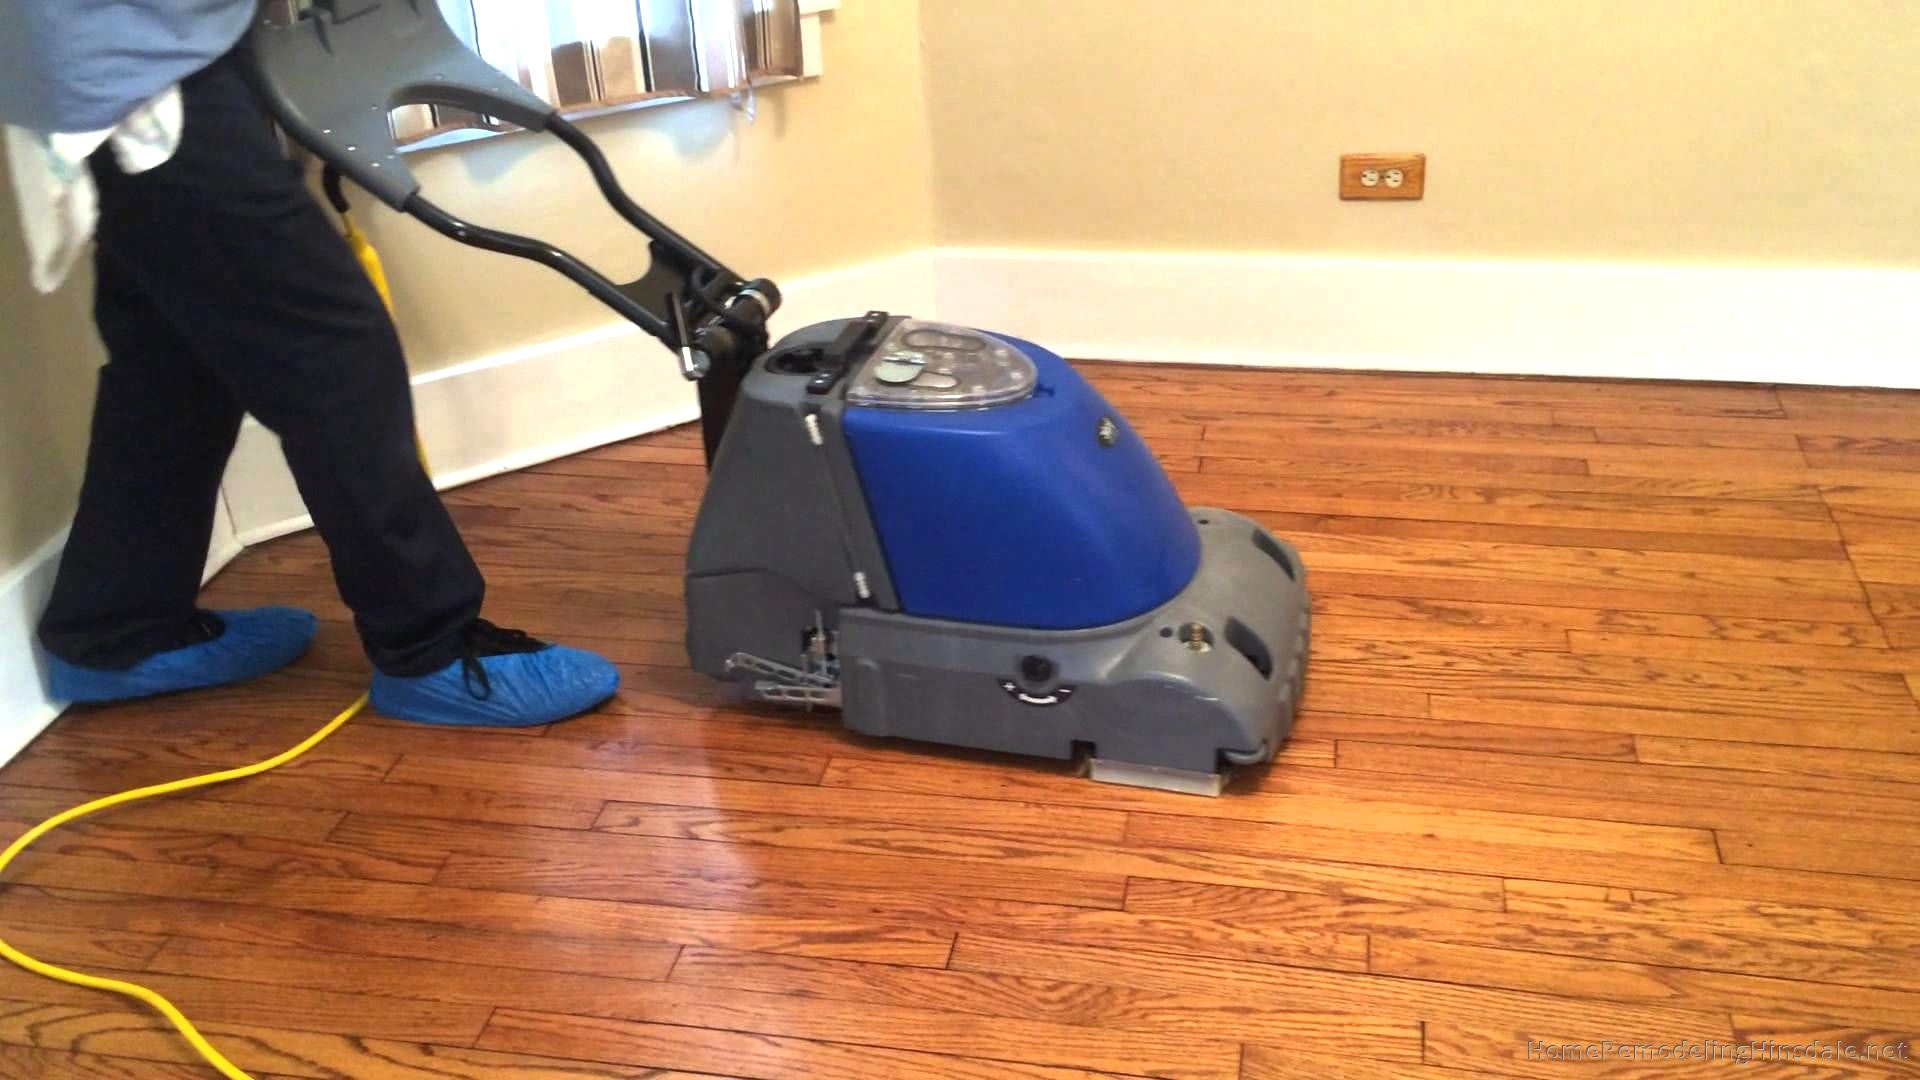 wholesale hardwood flooring online of cleaning machine professional tile floor cleaning machines image with regard to gallery of professional tile floor cleaning machines image collections cheap commercial wood machine best